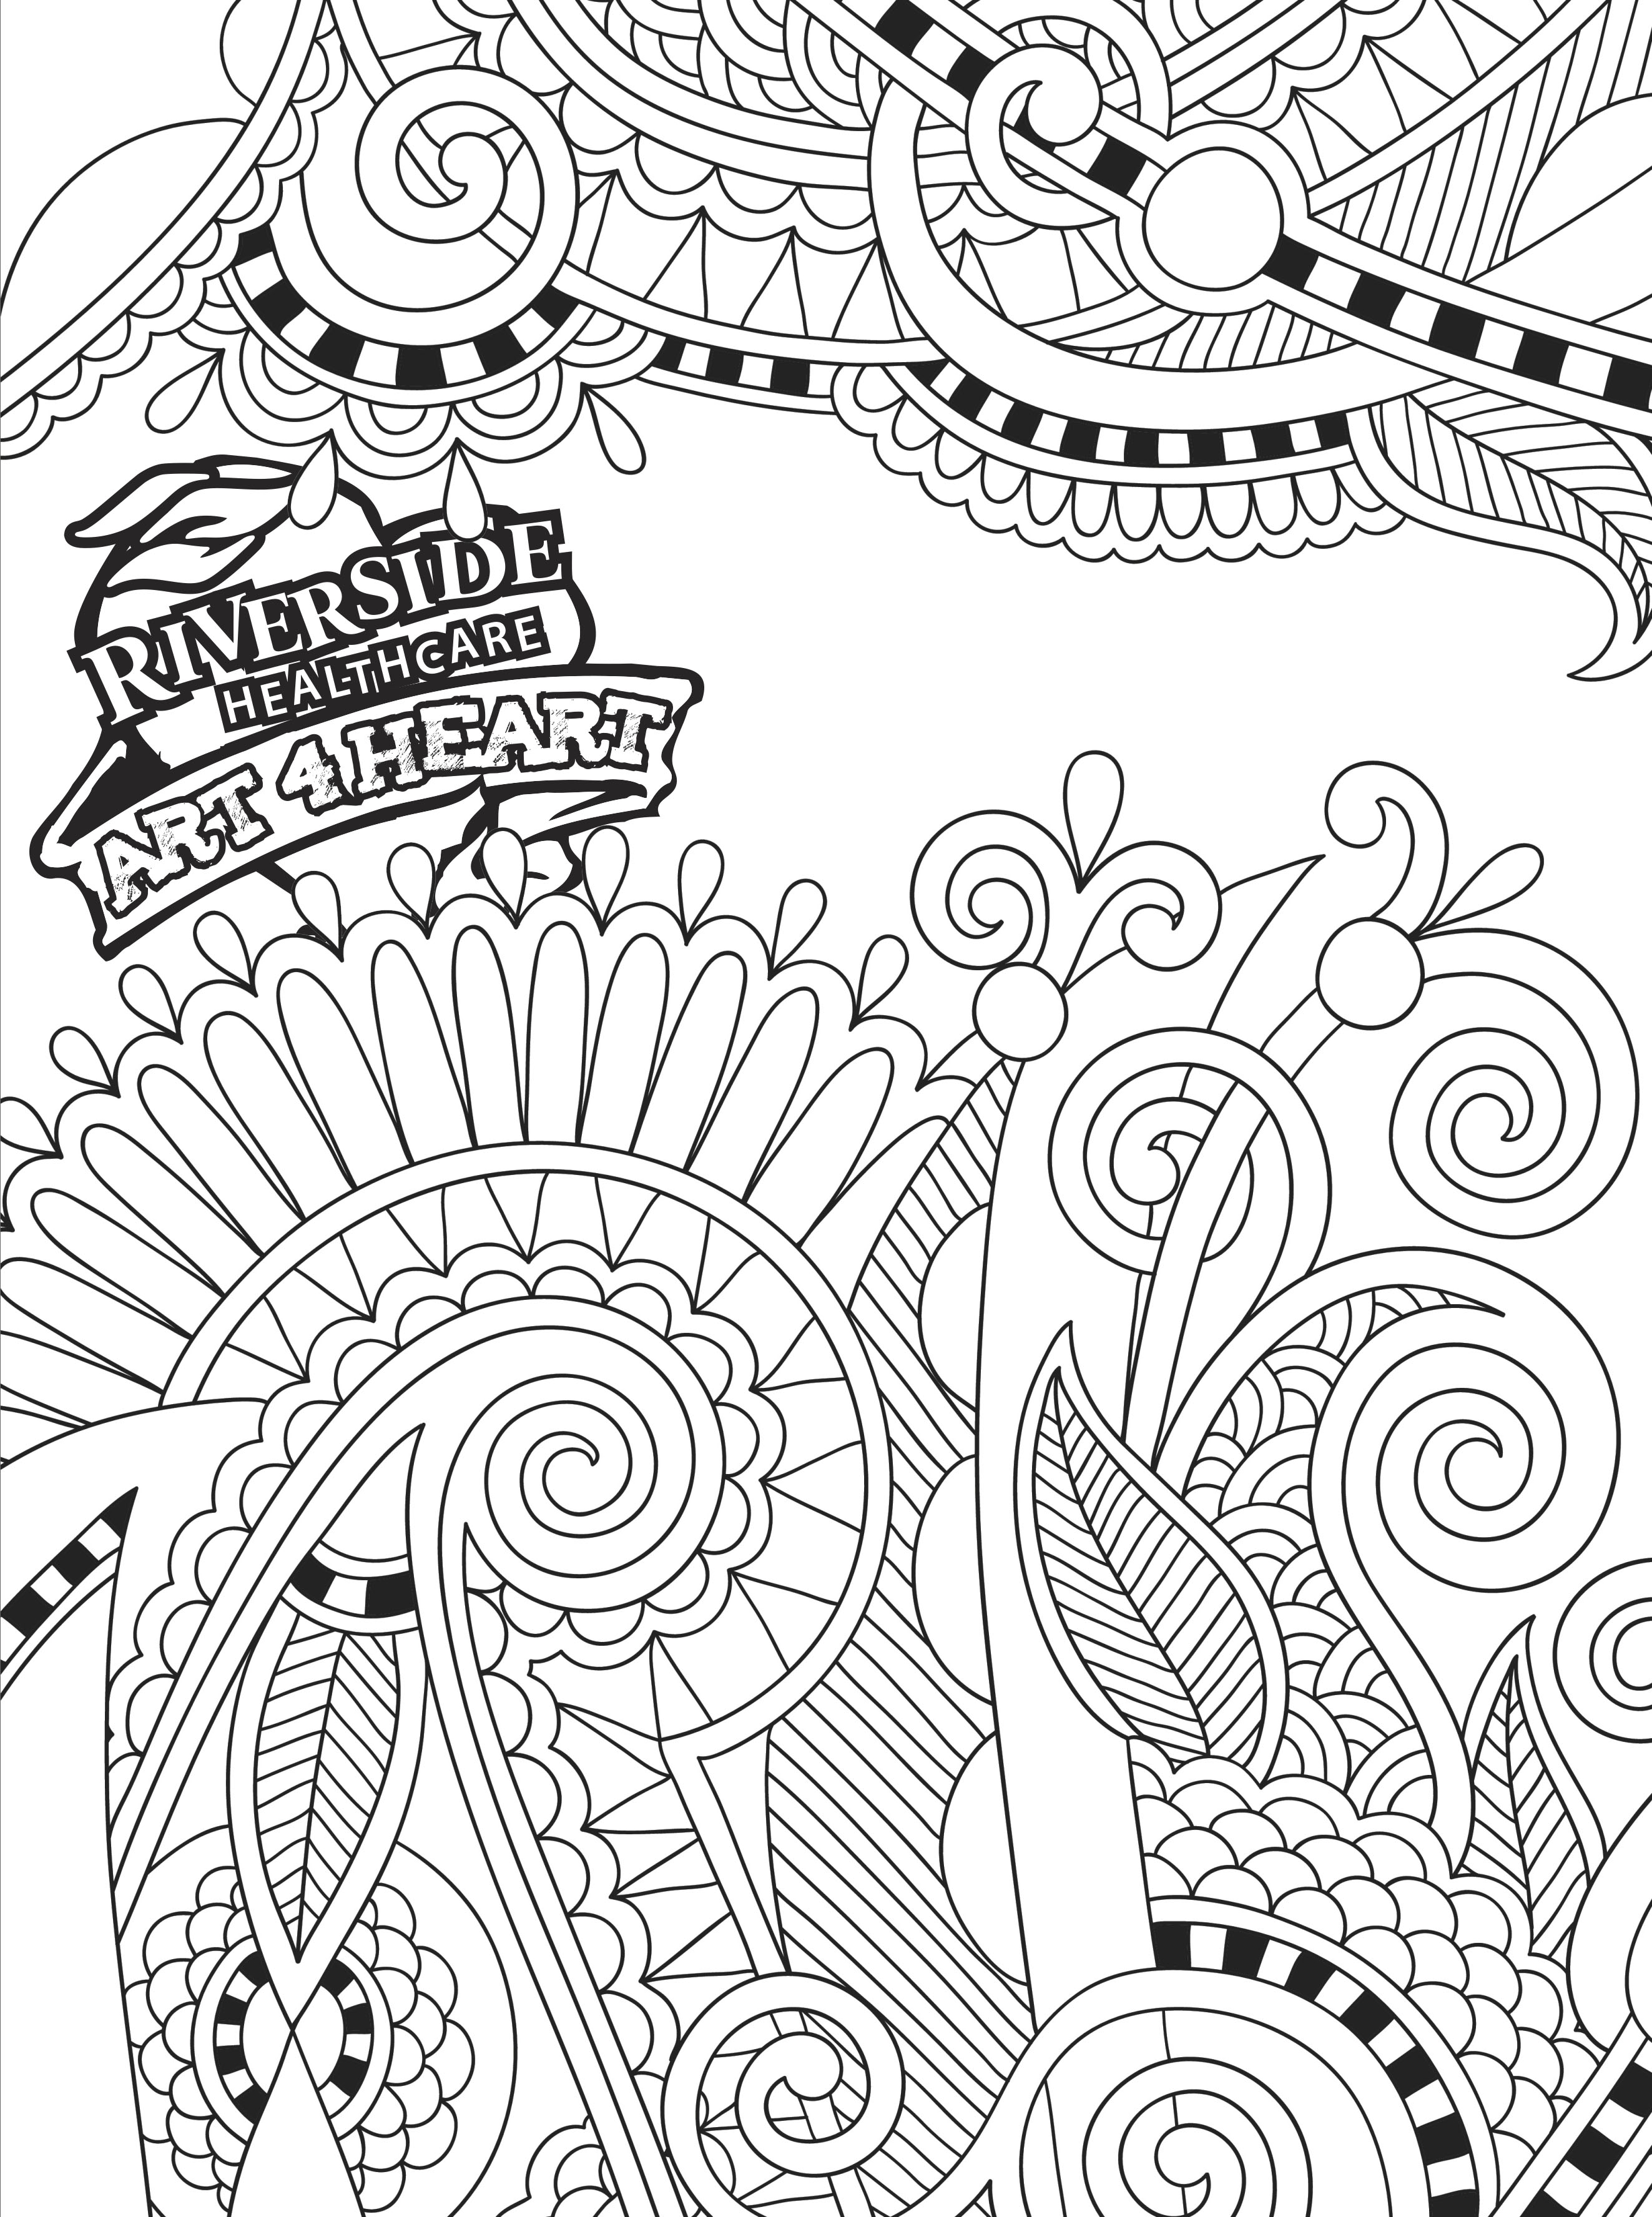 HealthCurrents » Printable Coloring Pages